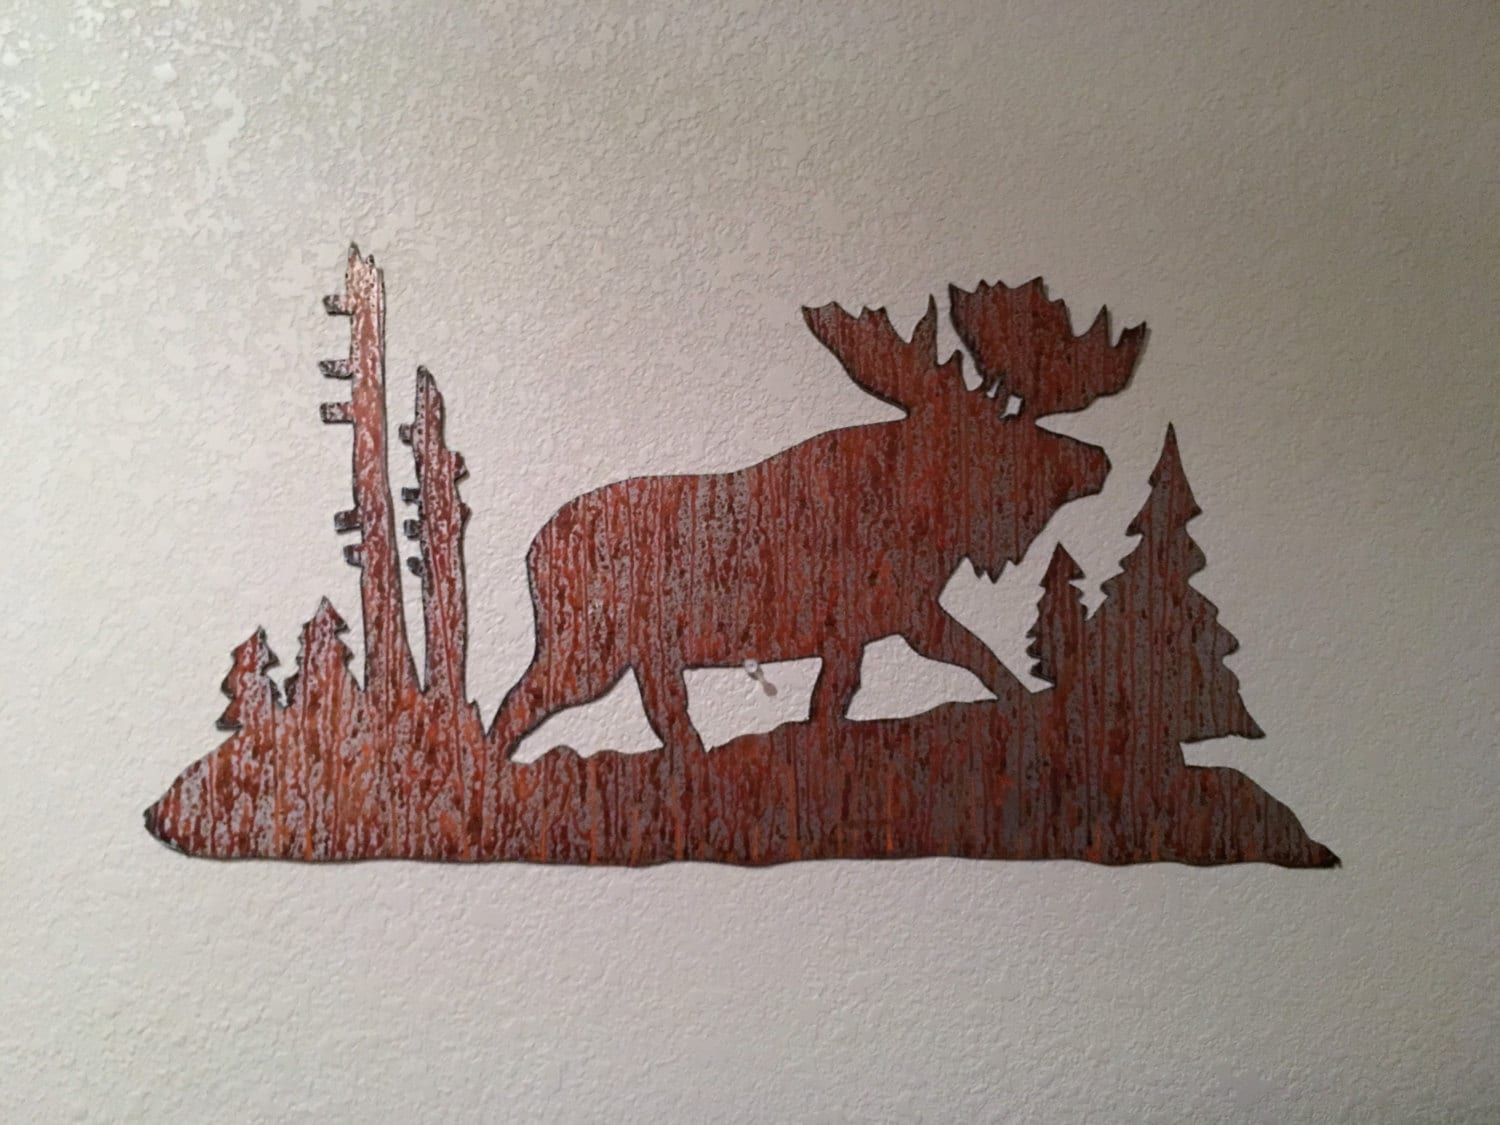 Moose Decoration, Rustic Metal Wall Art. Moose Artwork, Mountain Home Decor,  Brown Color, Nature Inspired, Moose Nursery Decor, Rustic Decor